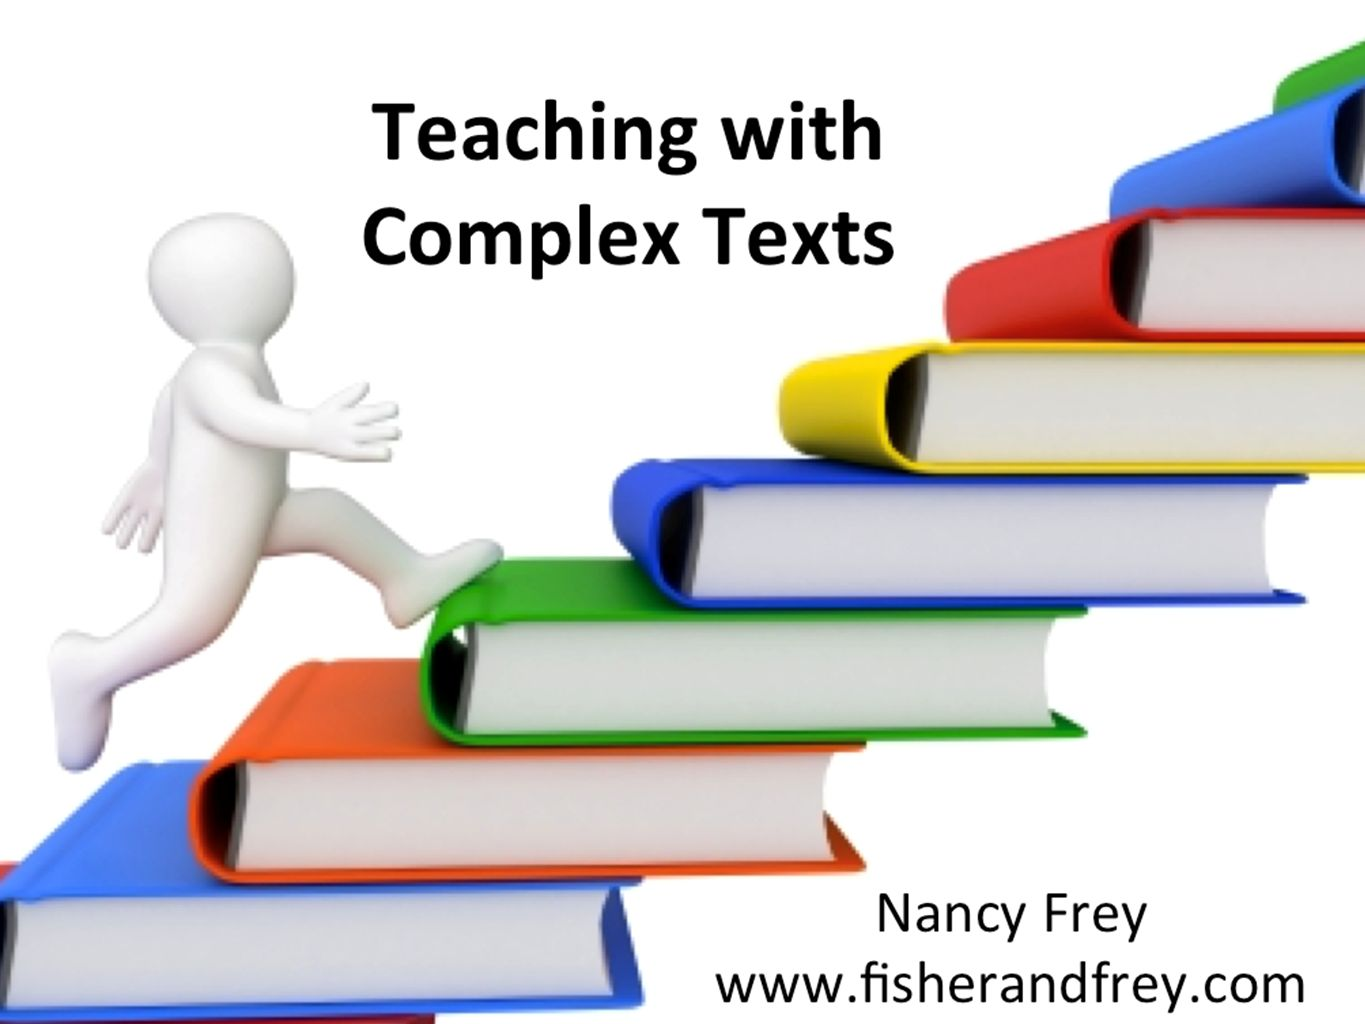 Fisher, Frey, and Lapp have written an excellent book regarding text complexity.